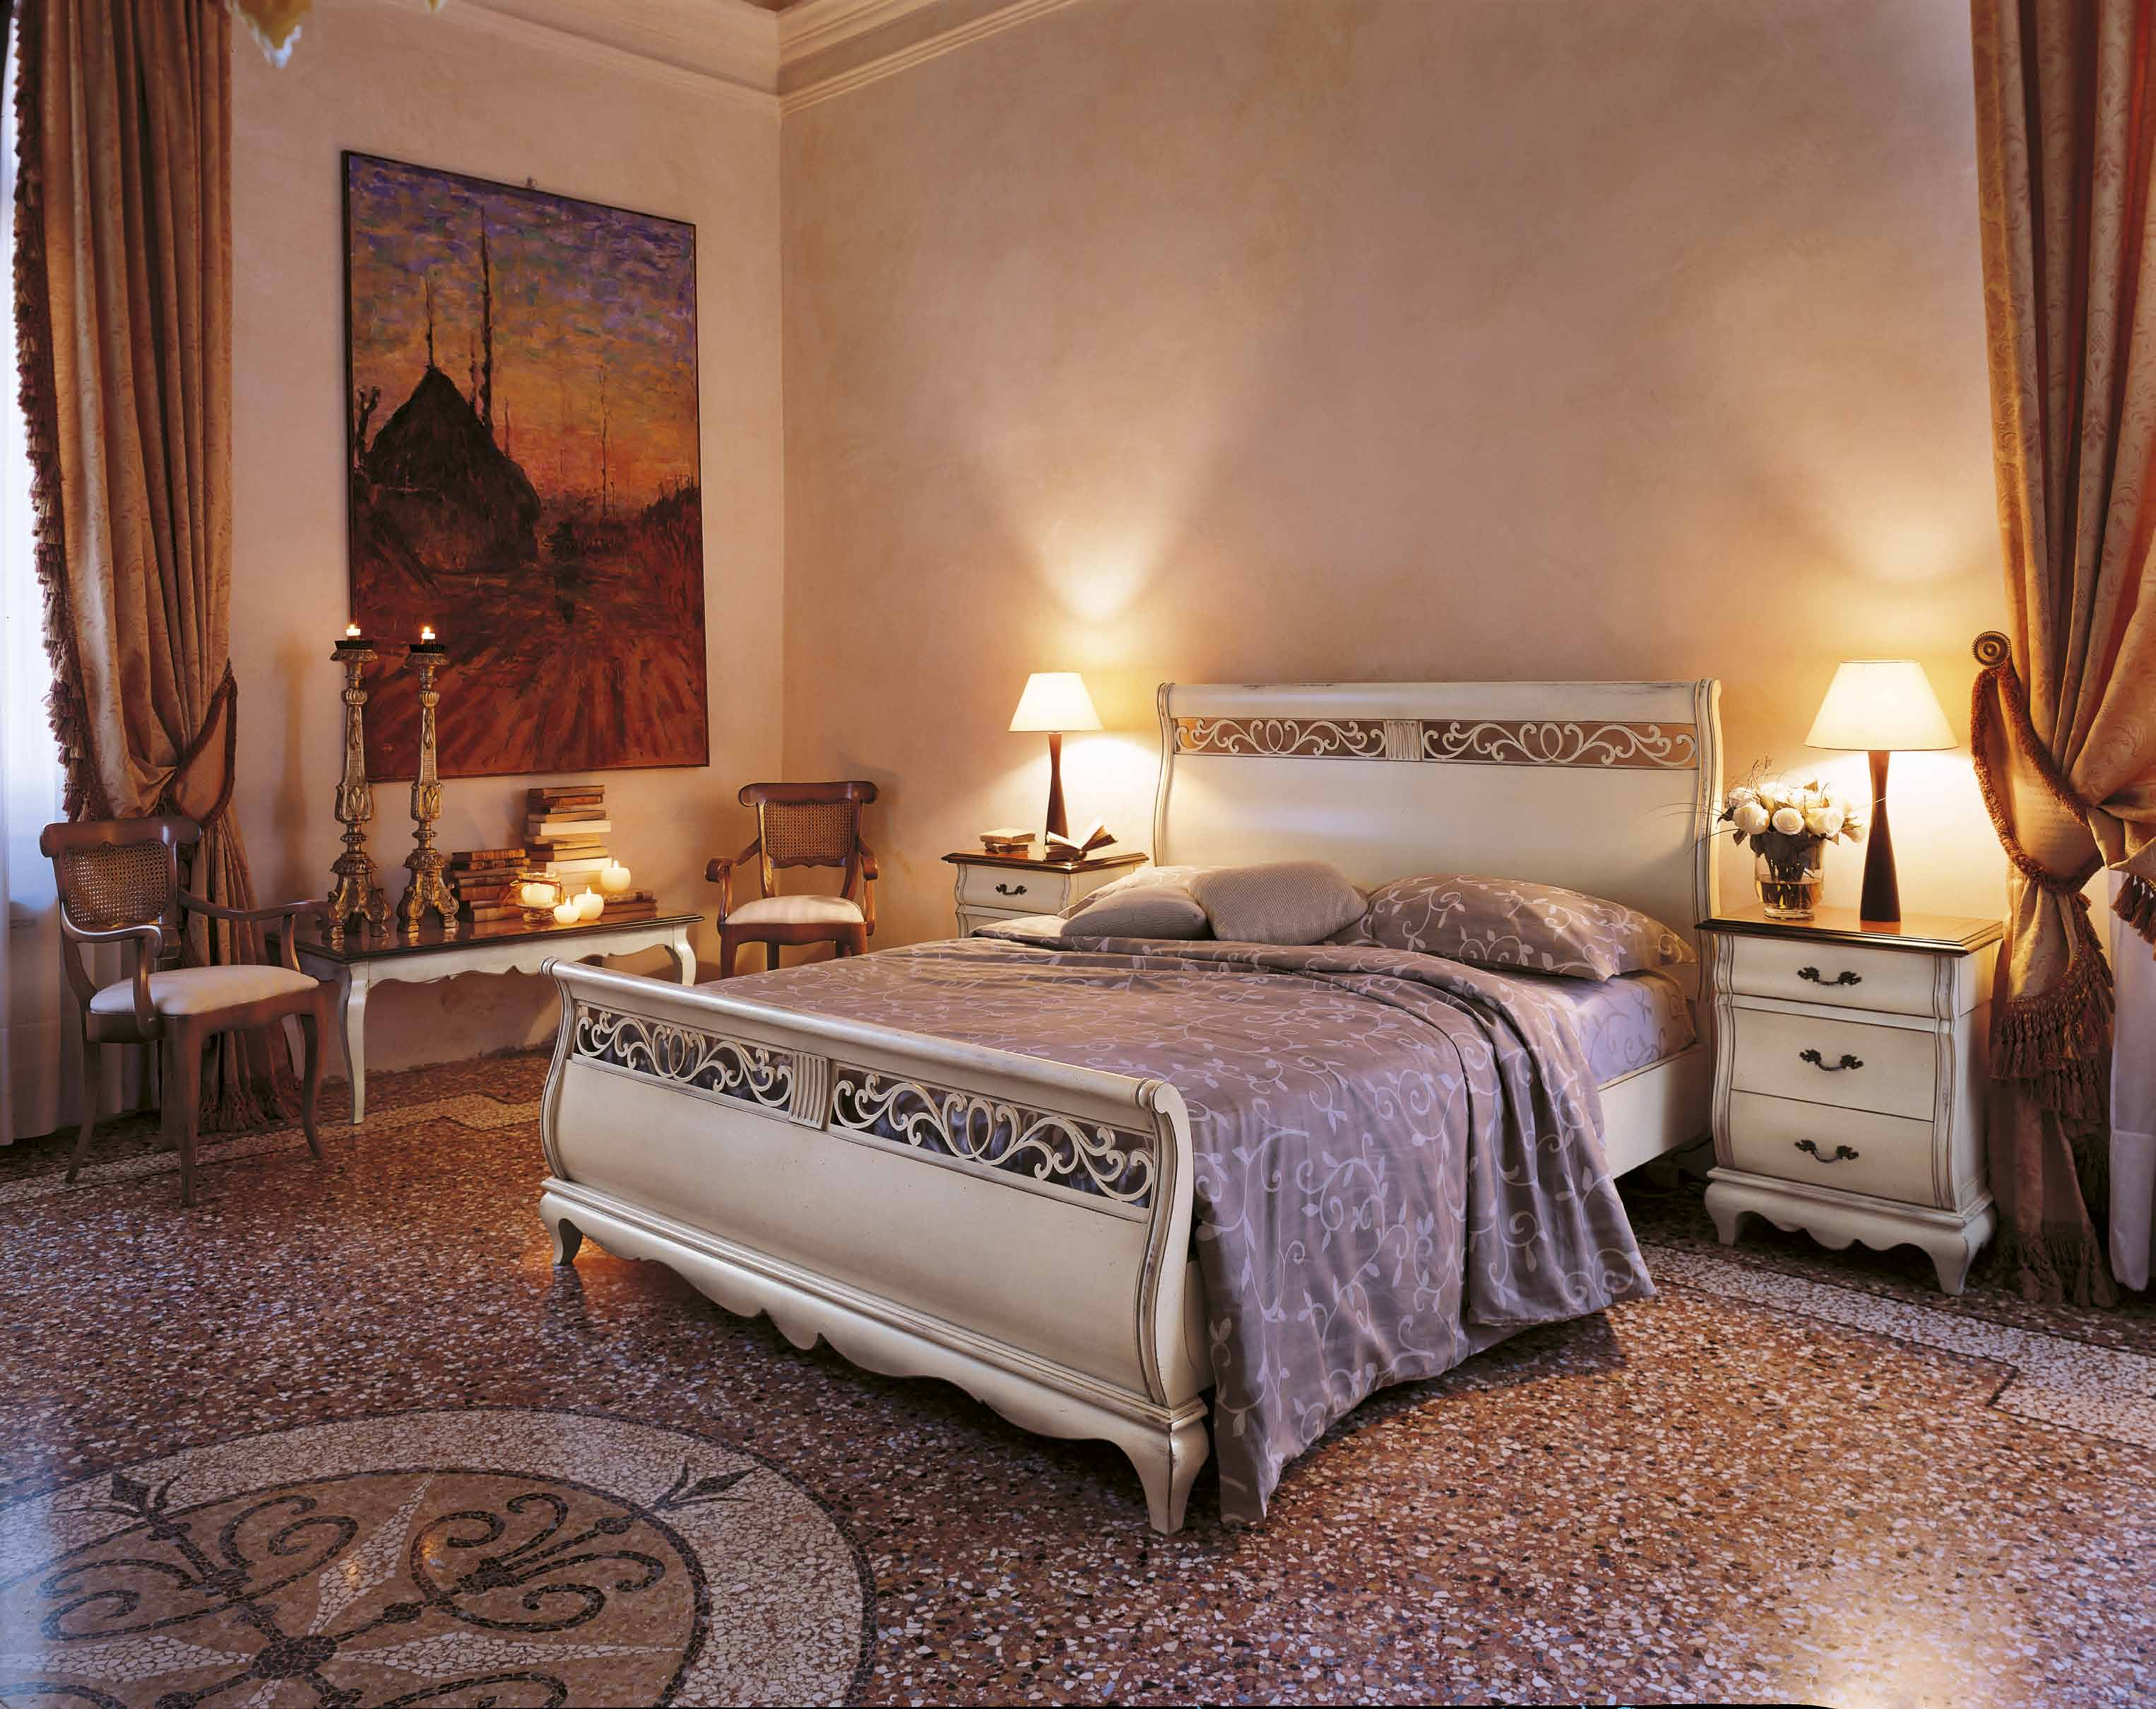 https://www.mobiliacolori.it/wp-content/uploads/2018/08/Letto-sagomato-provenzale-Belle.jpg